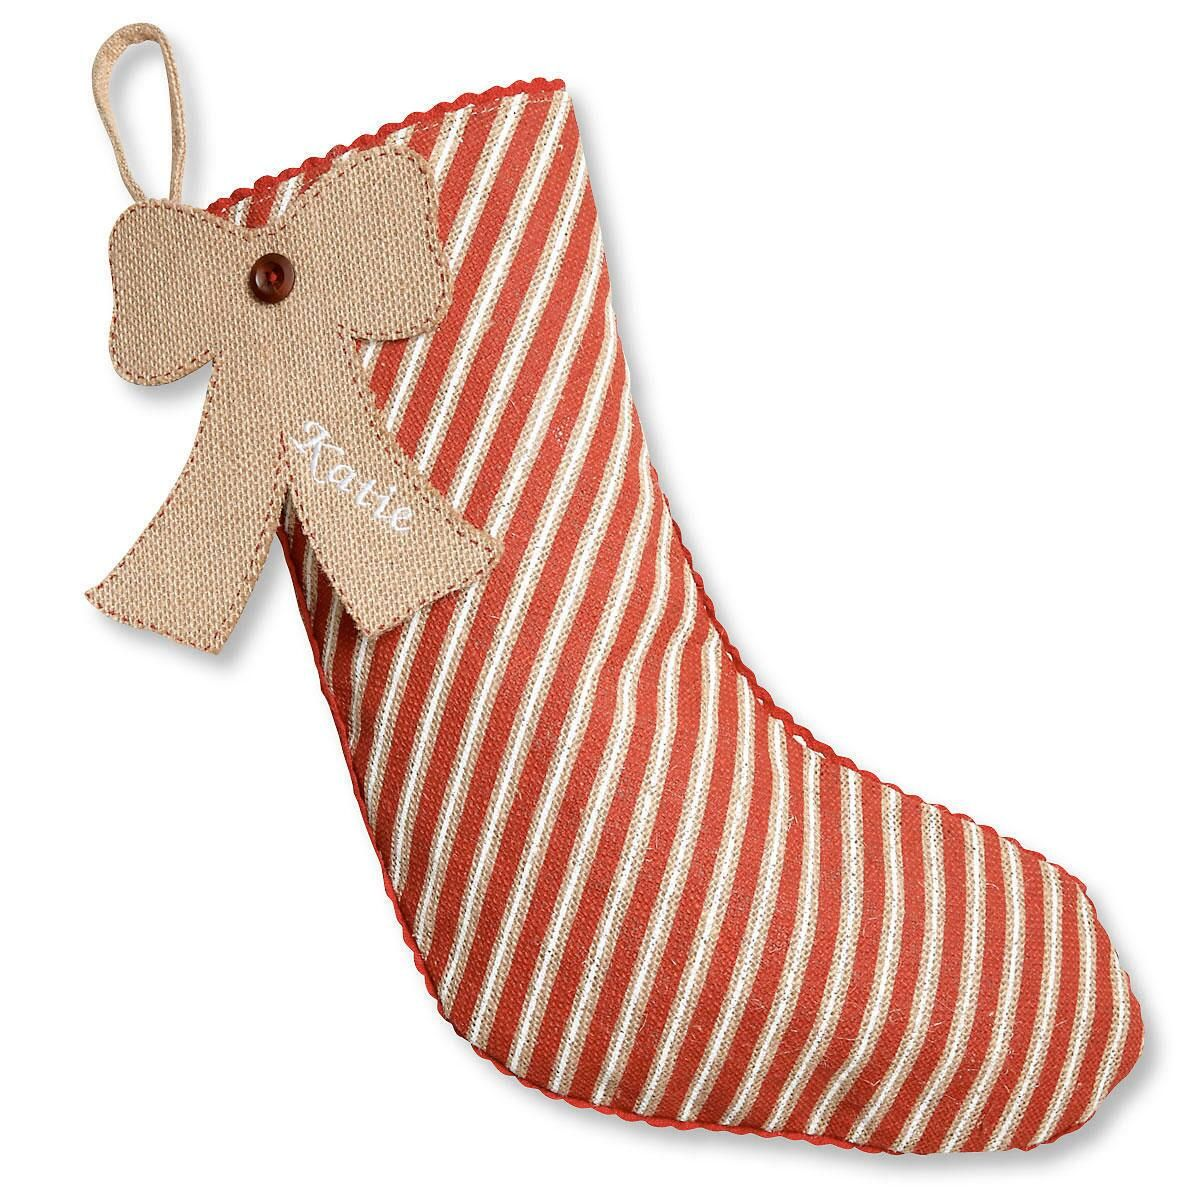 Burlap Personalized Christmas Stocking Striped With Bow Tag by Mud Pie